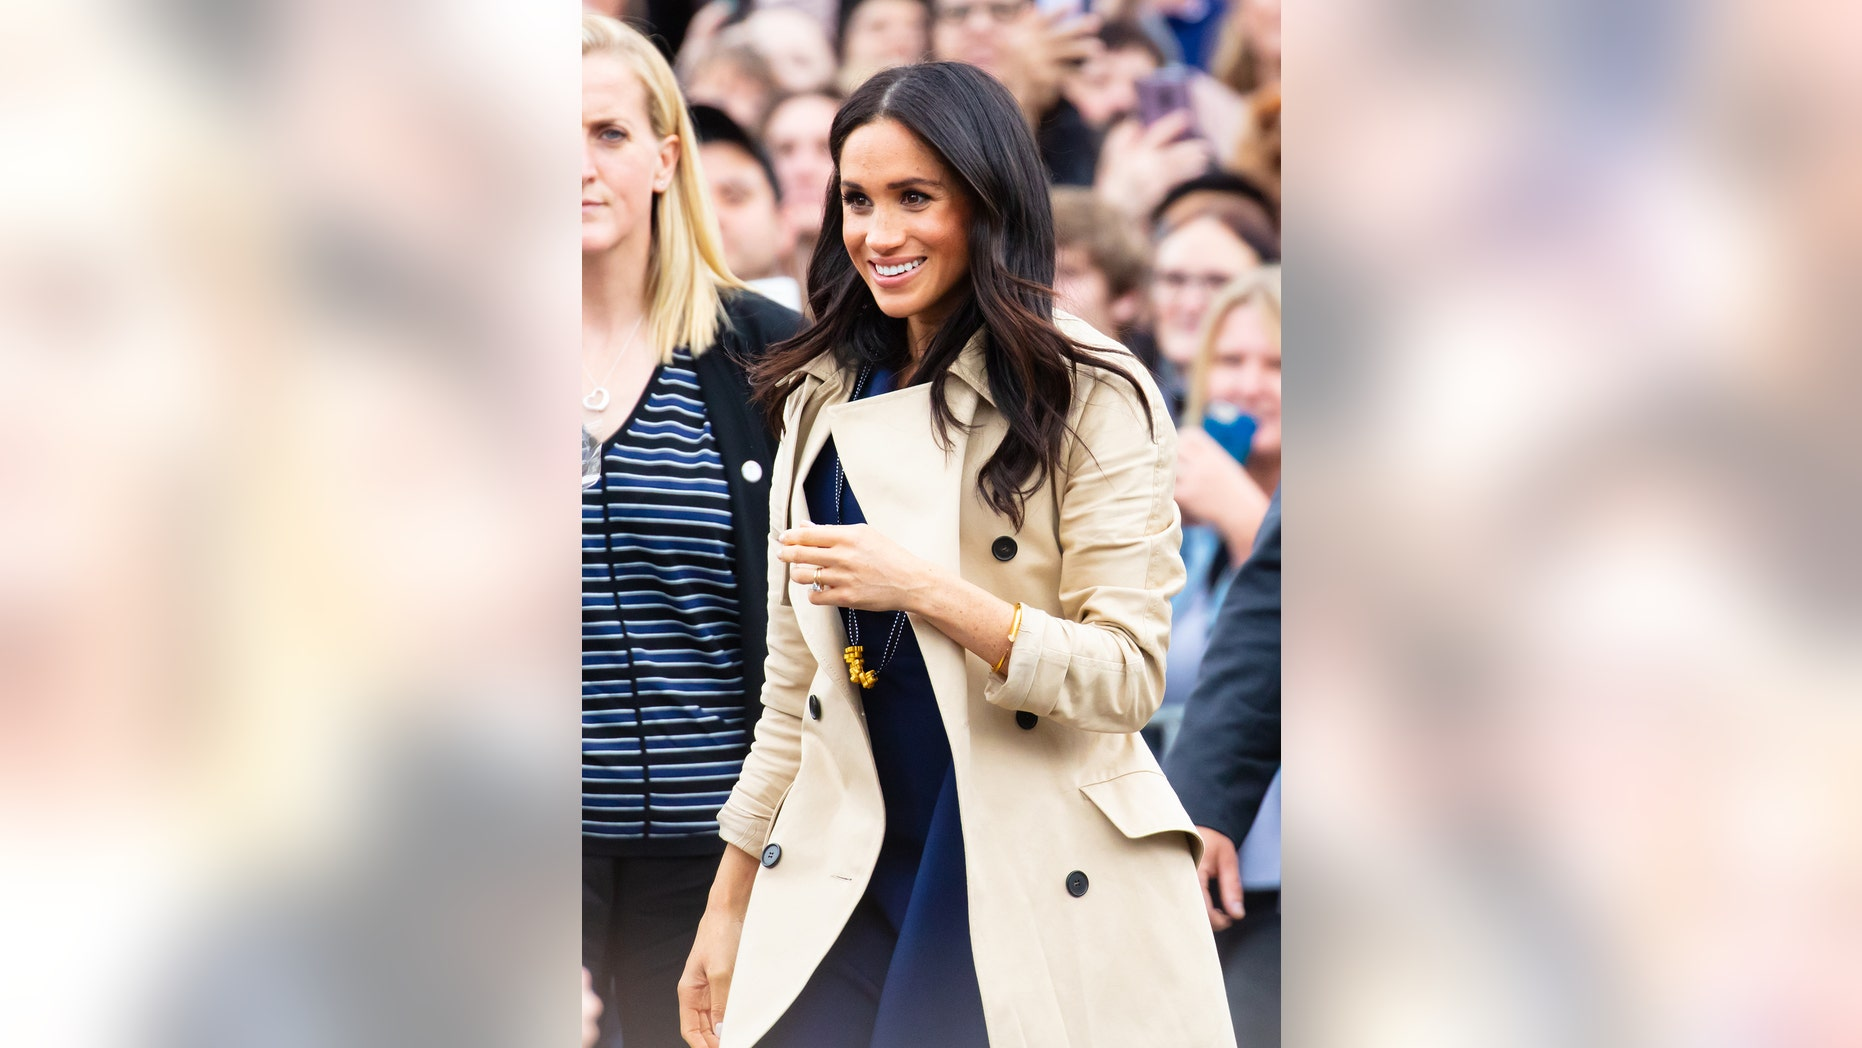 Markle's macaroni necklace was THE necklace of Oct. 18, 2018.